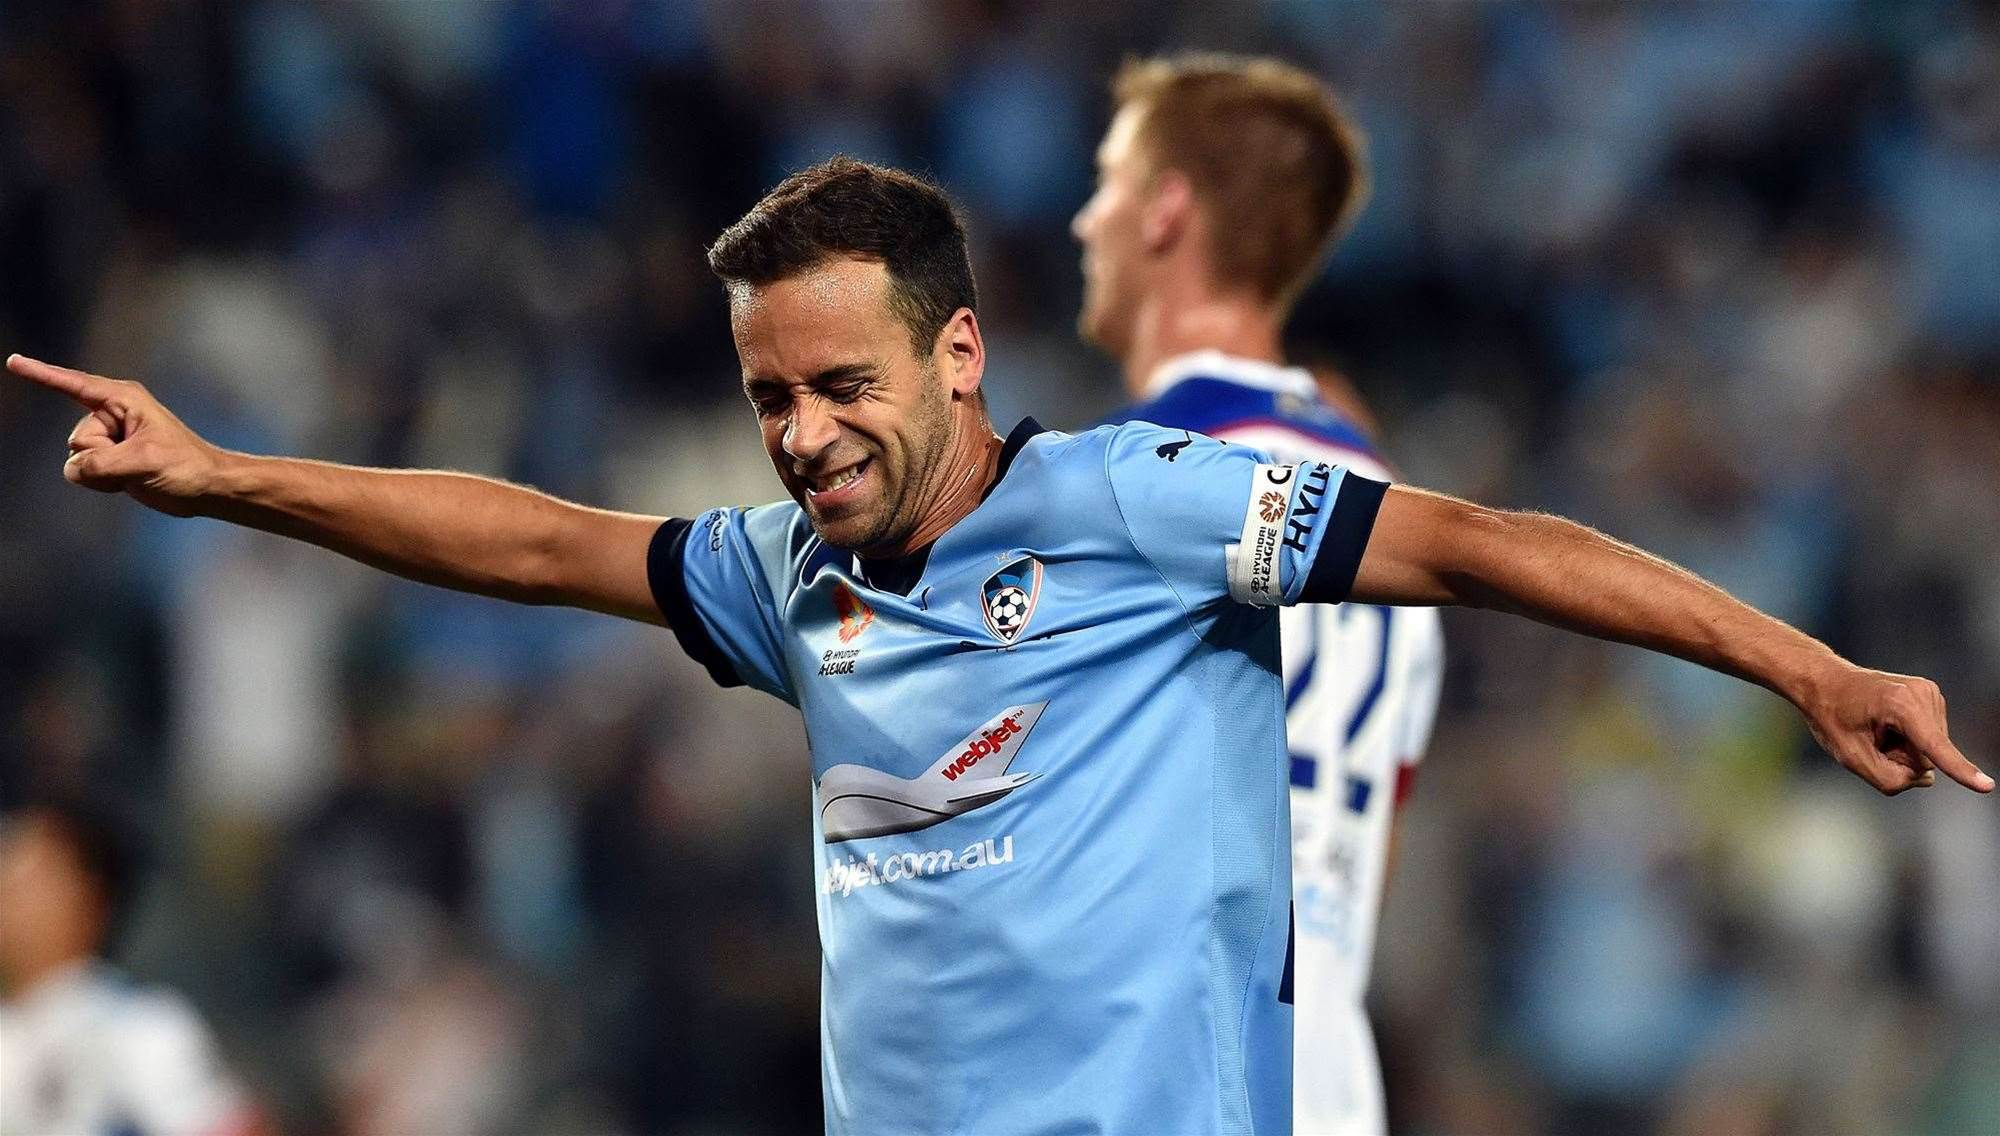 Brosque is back for Sydney